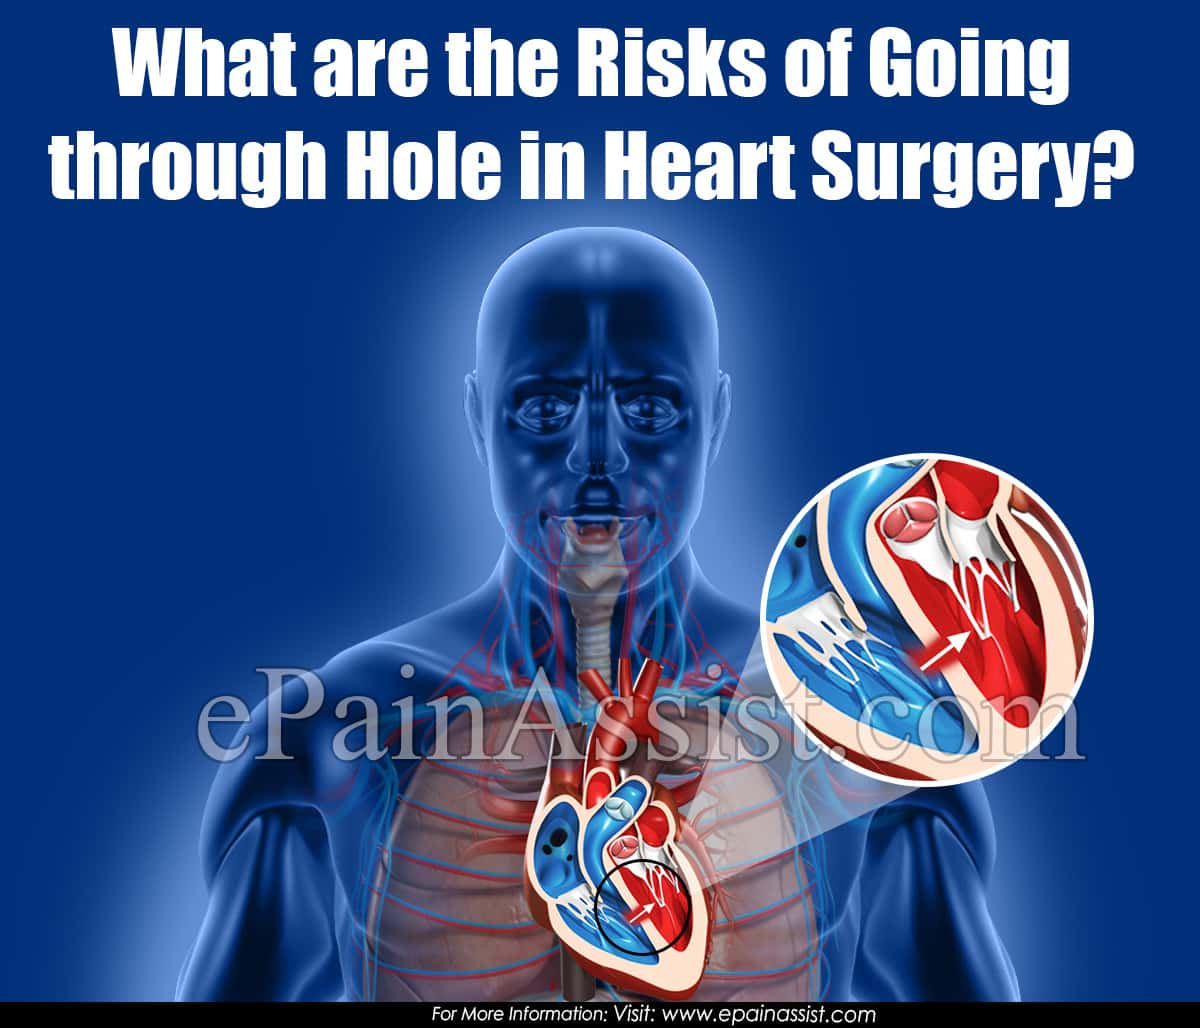 What are the Risks of Going through Hole in Heart Surgery?